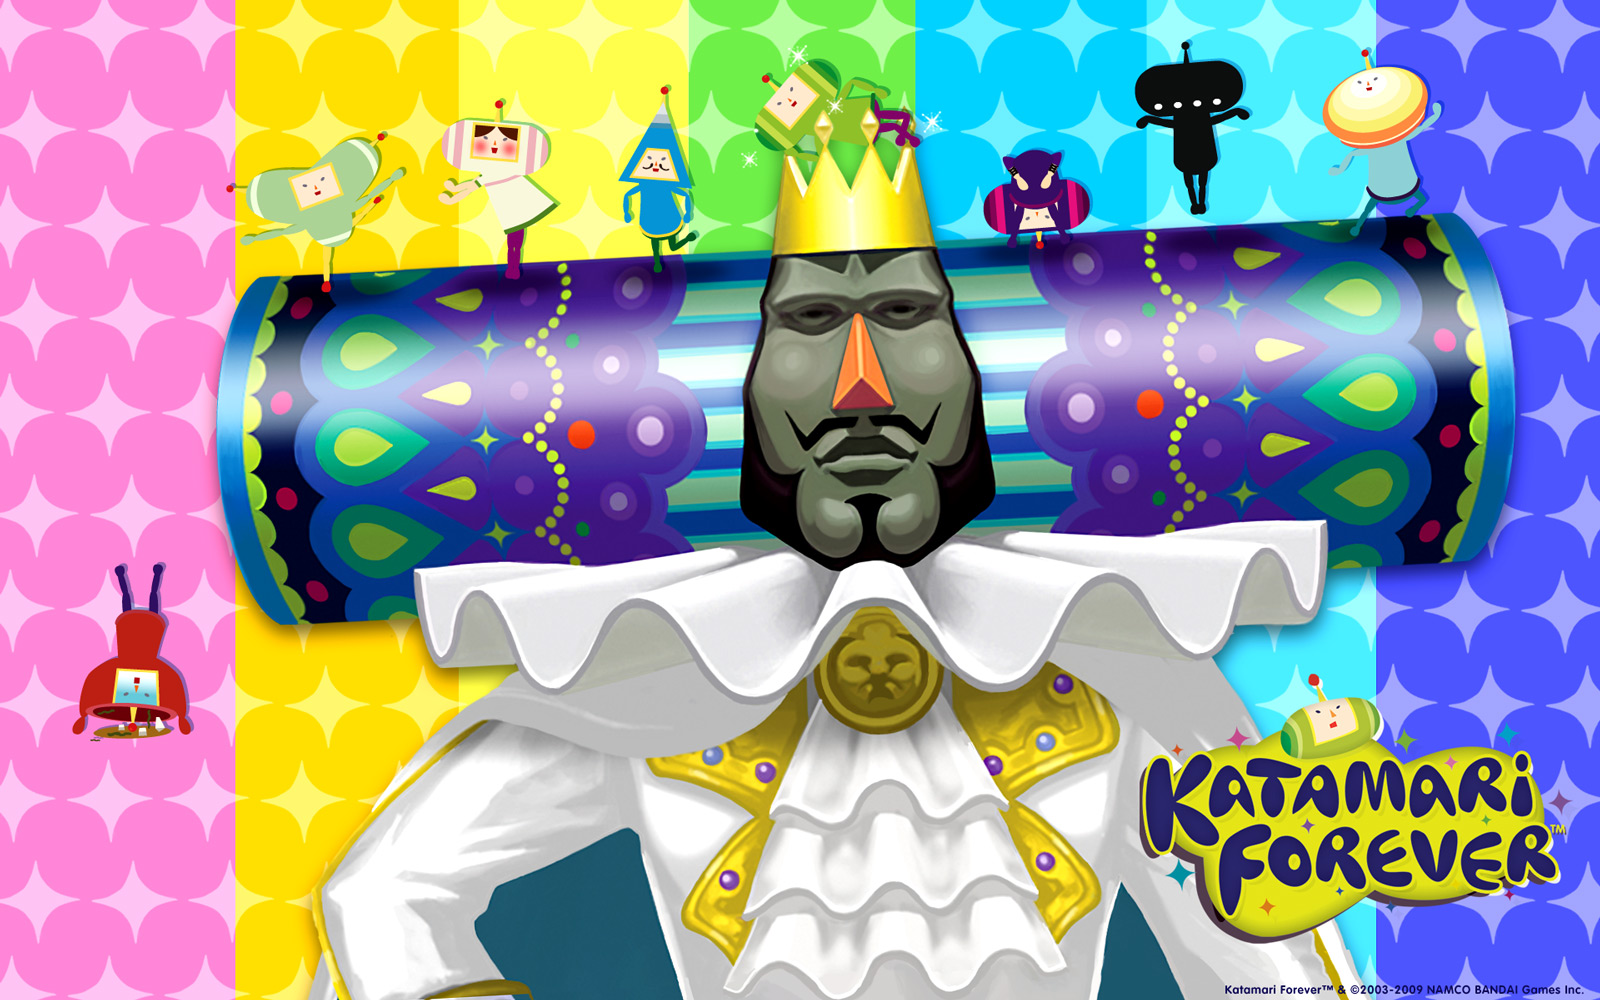 Katamari Forever Colorful - Katamari Forever Colorful